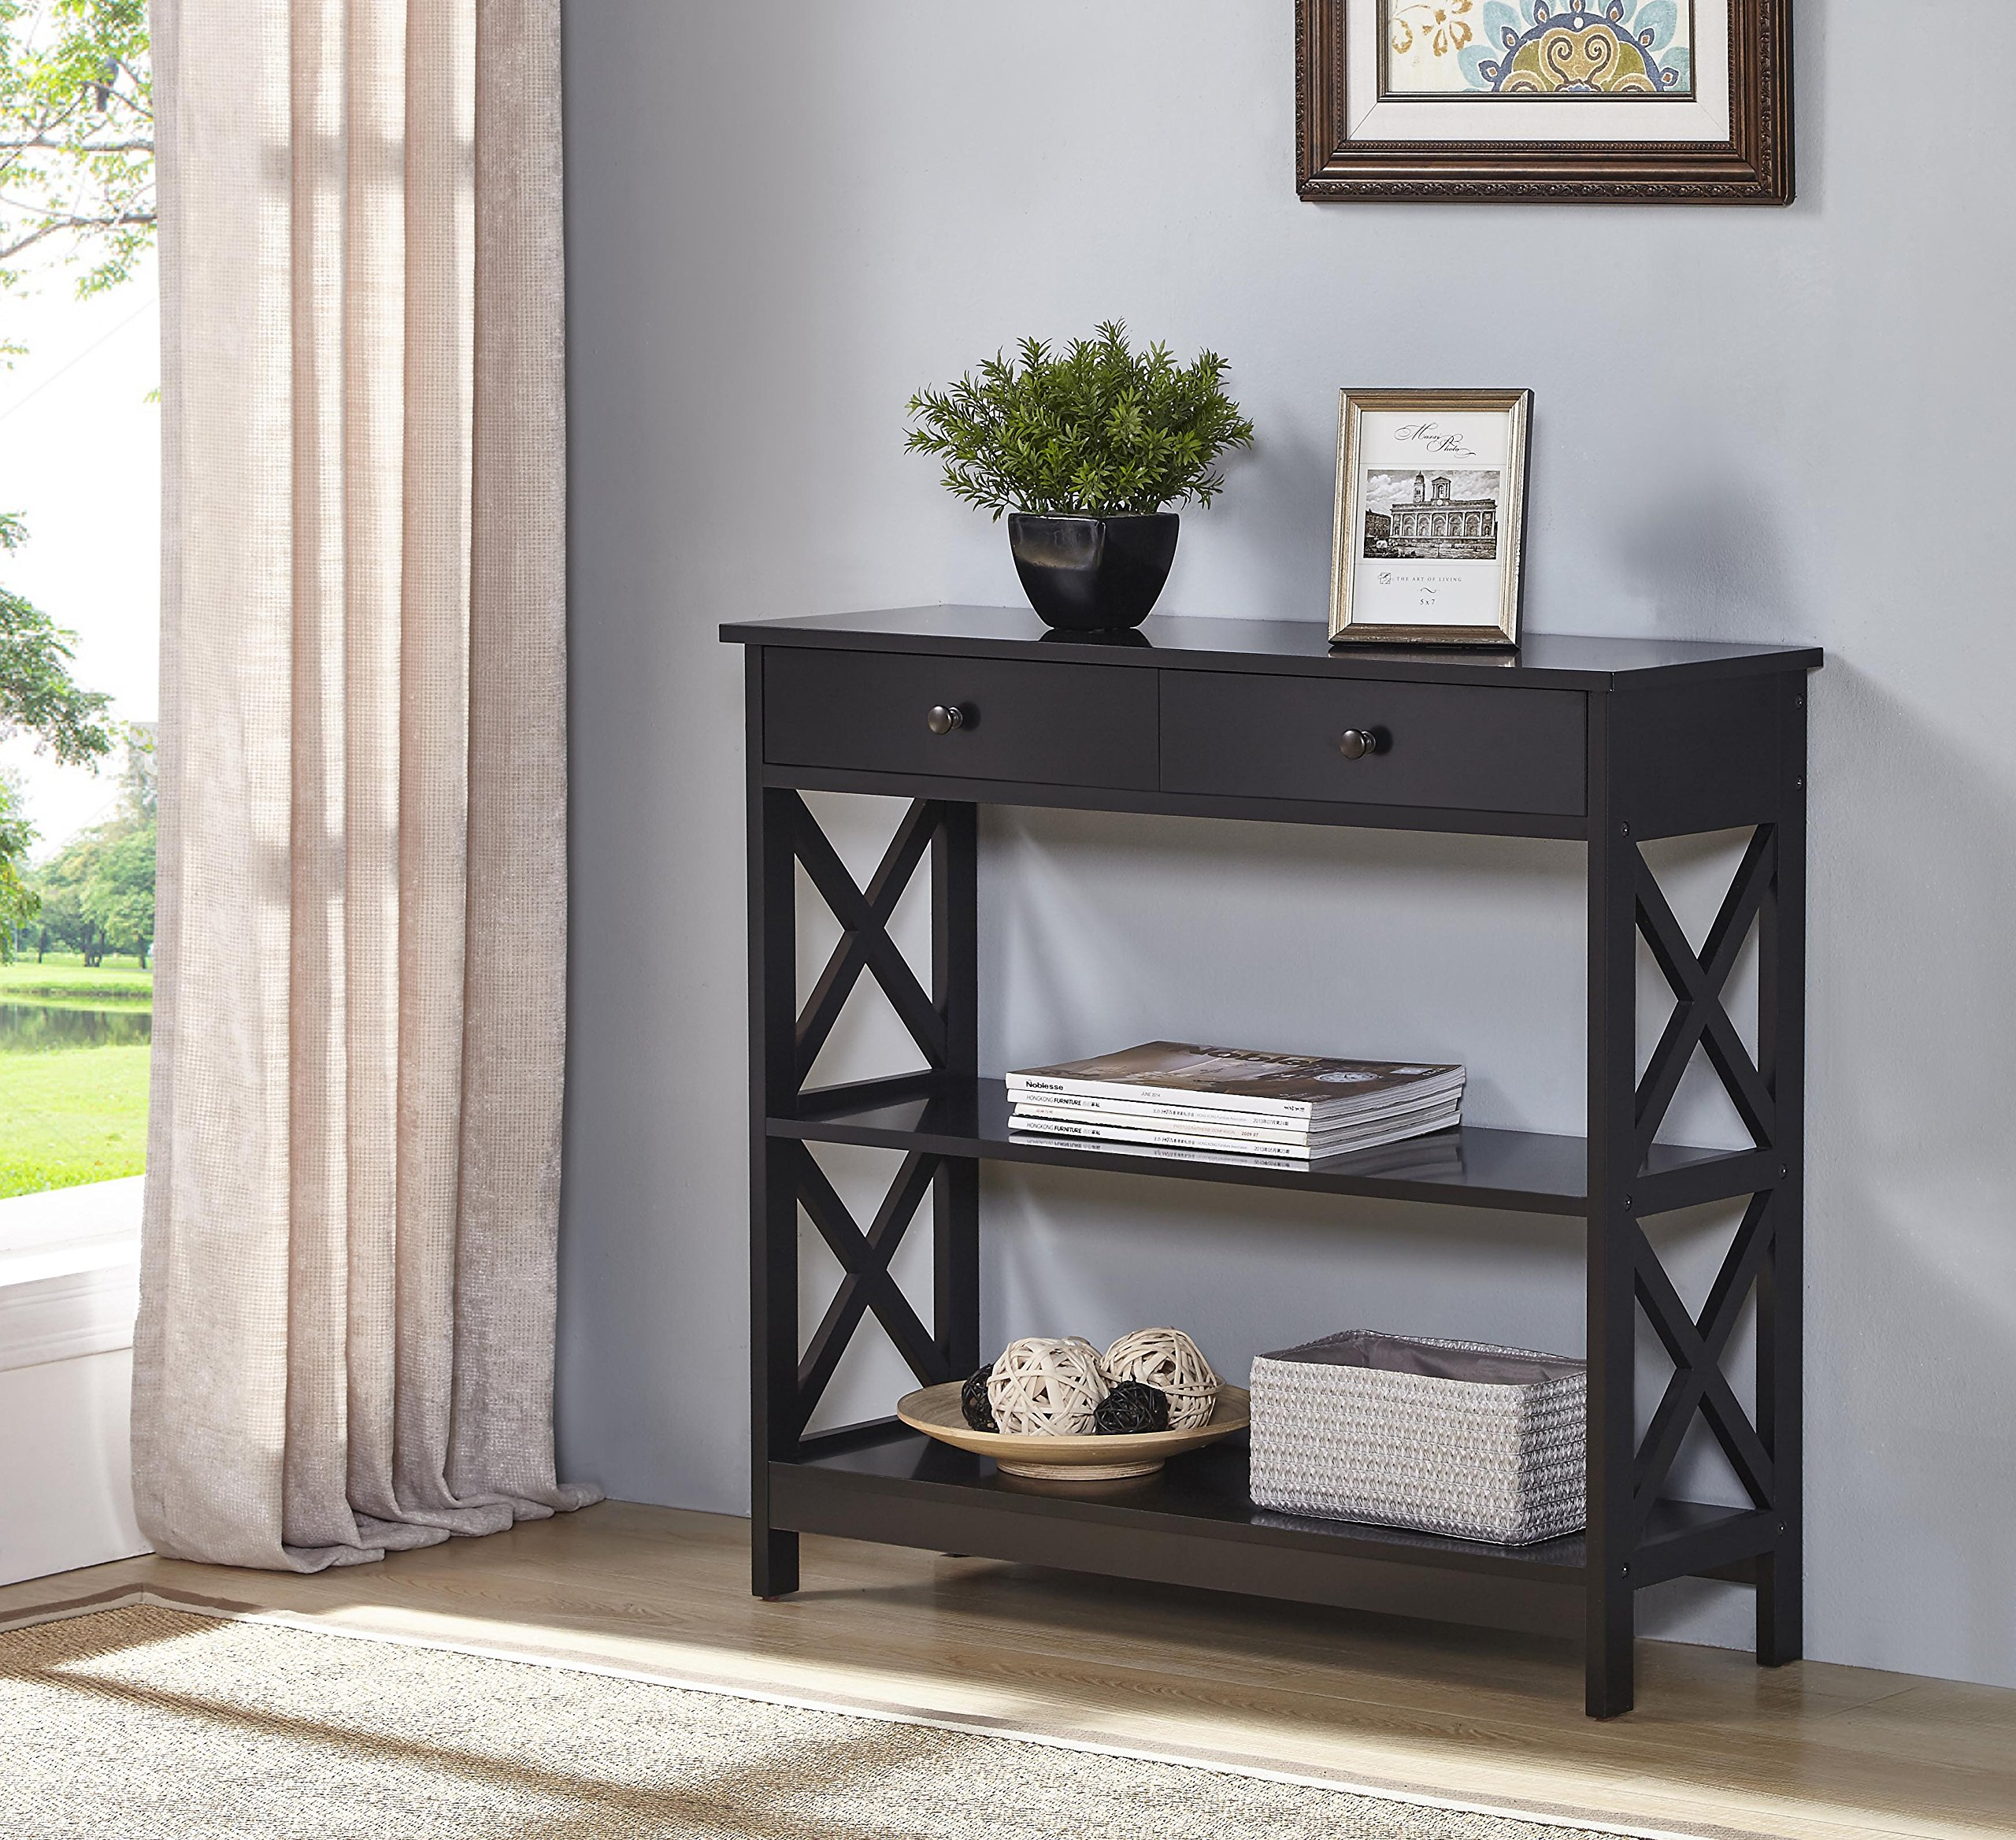 Black Finish 3-Tier Console Sofa Entry Table with Shelf/Two Drawers